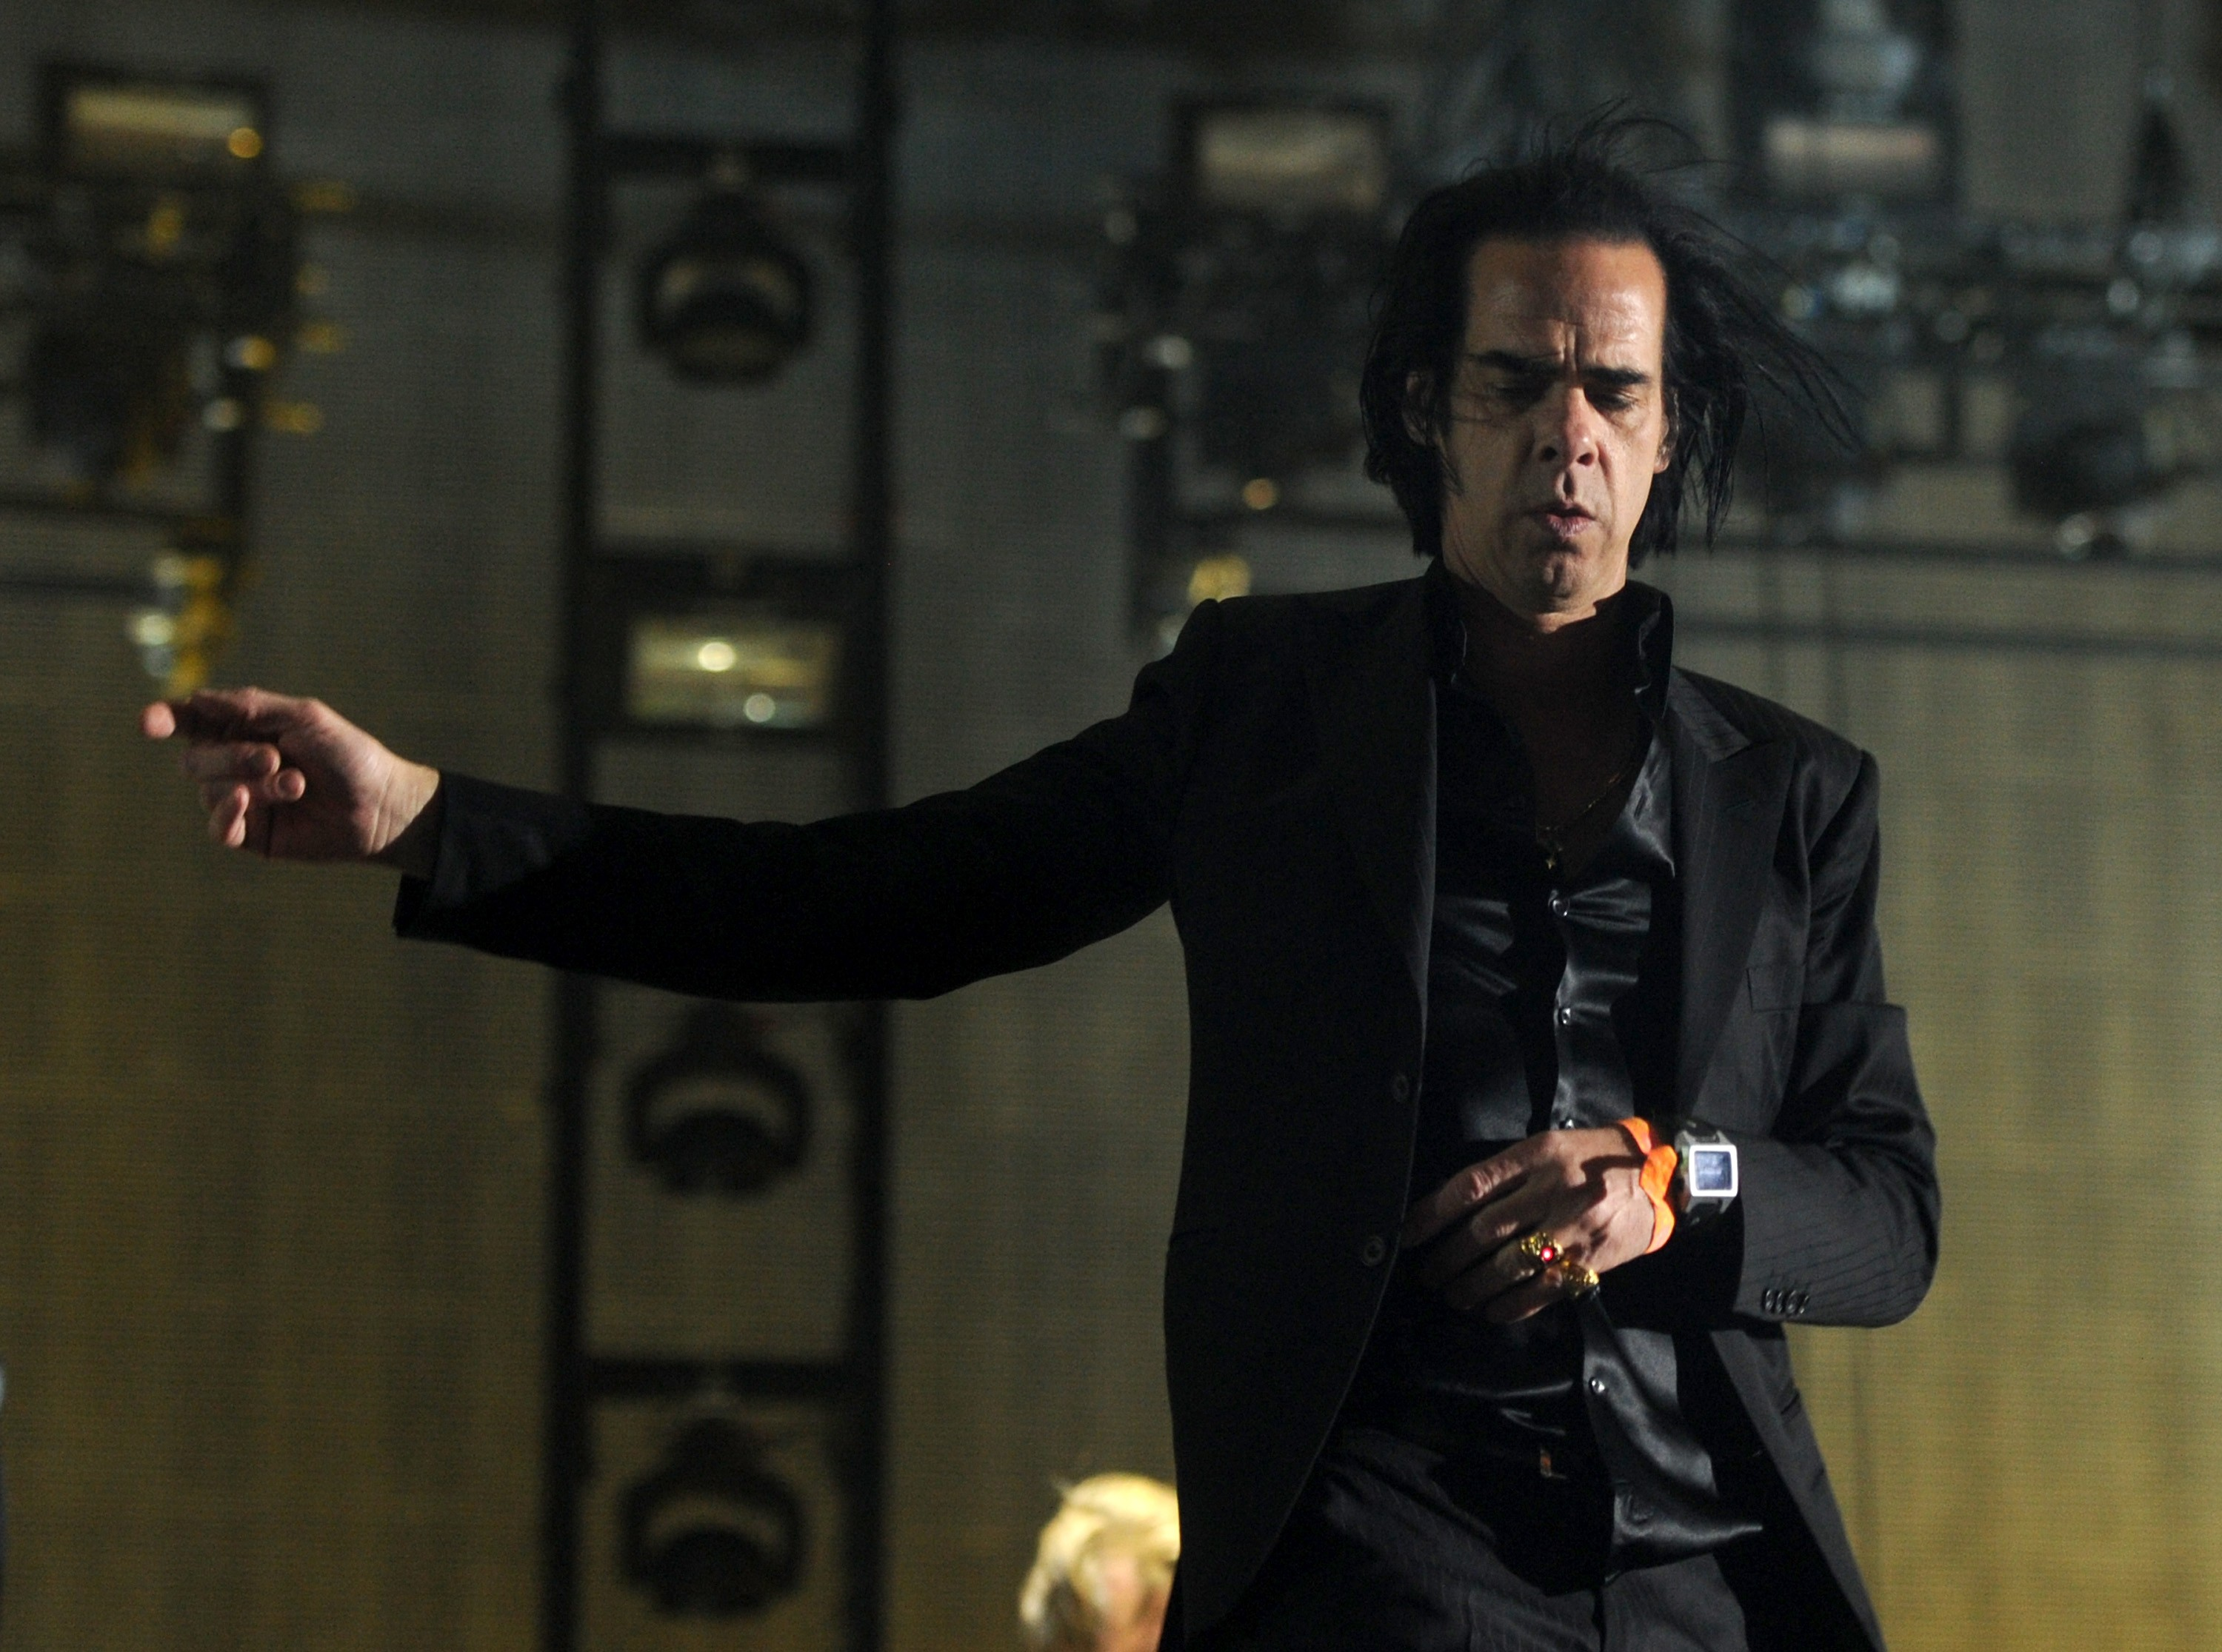 Nick Cave and the bad seeds reunite with Kylie Minogue